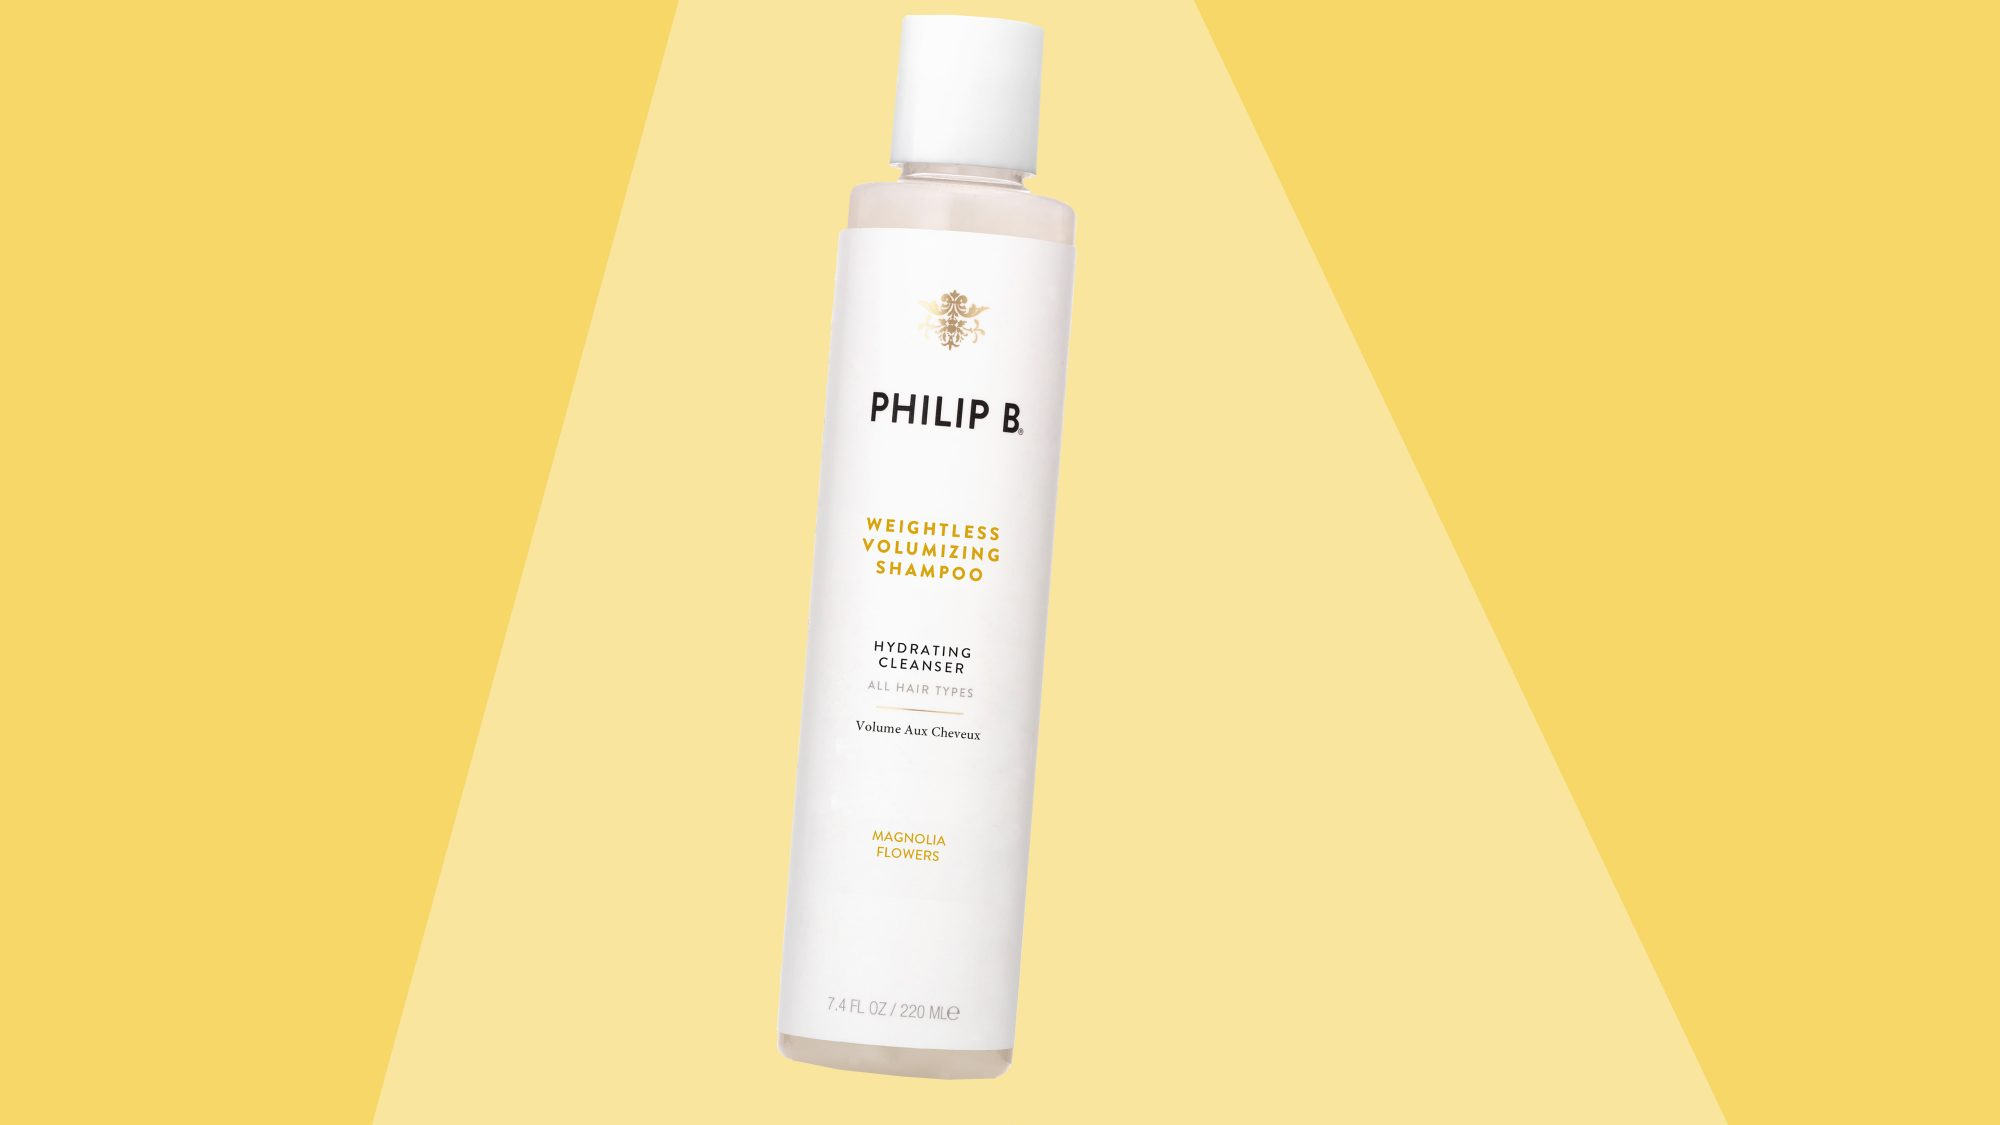 Weightless Volume Shampoo PHILIP B